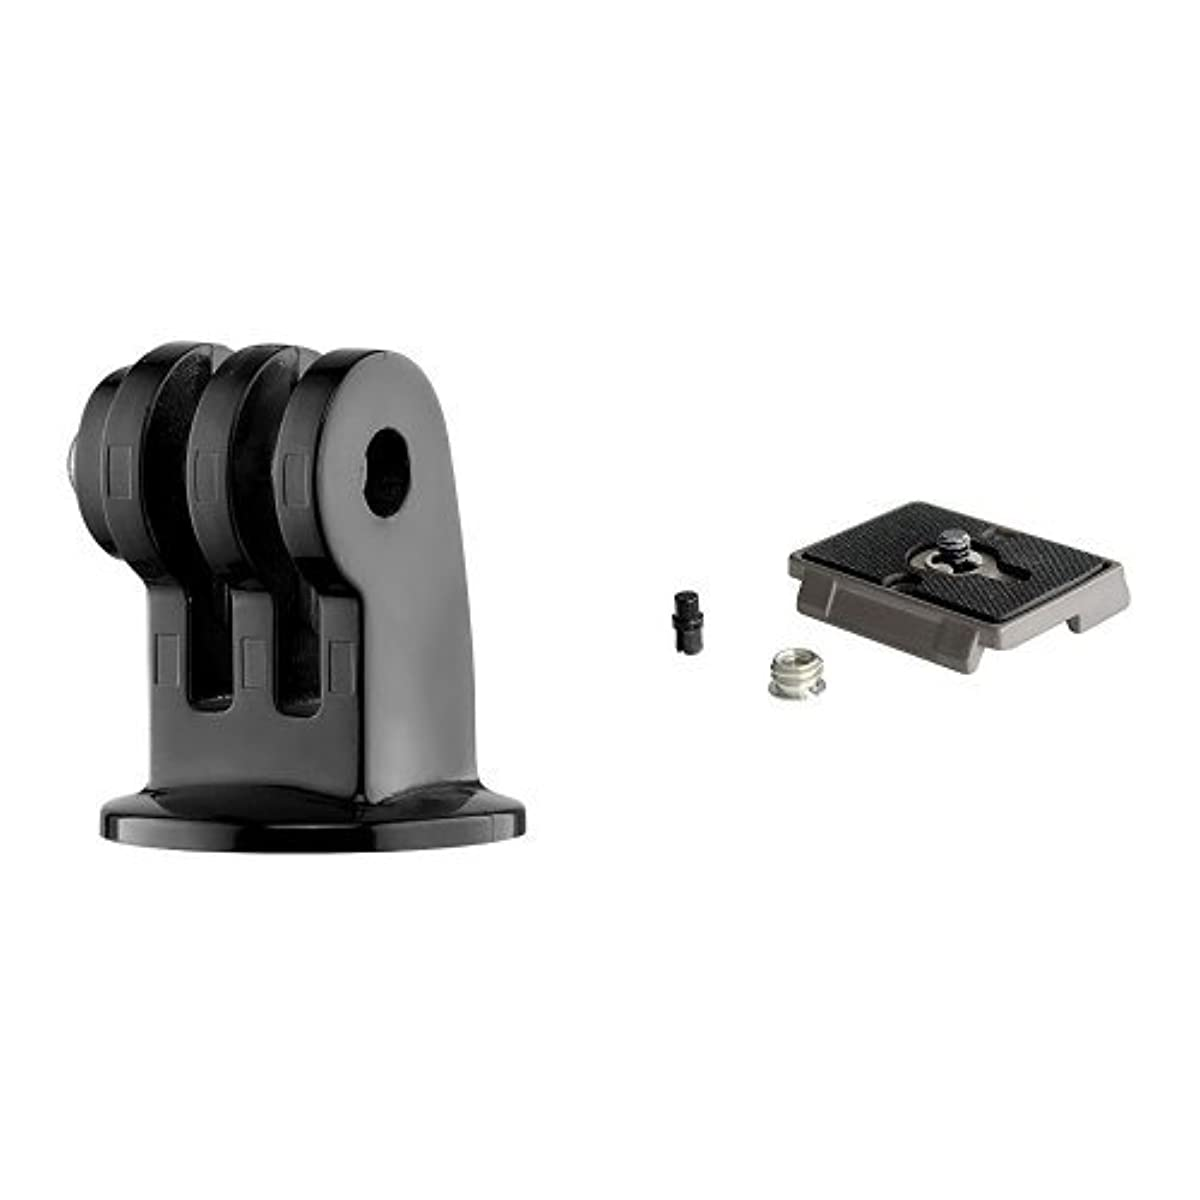 Manfrotto Universal Tripod Mount with Adapter for GoPro